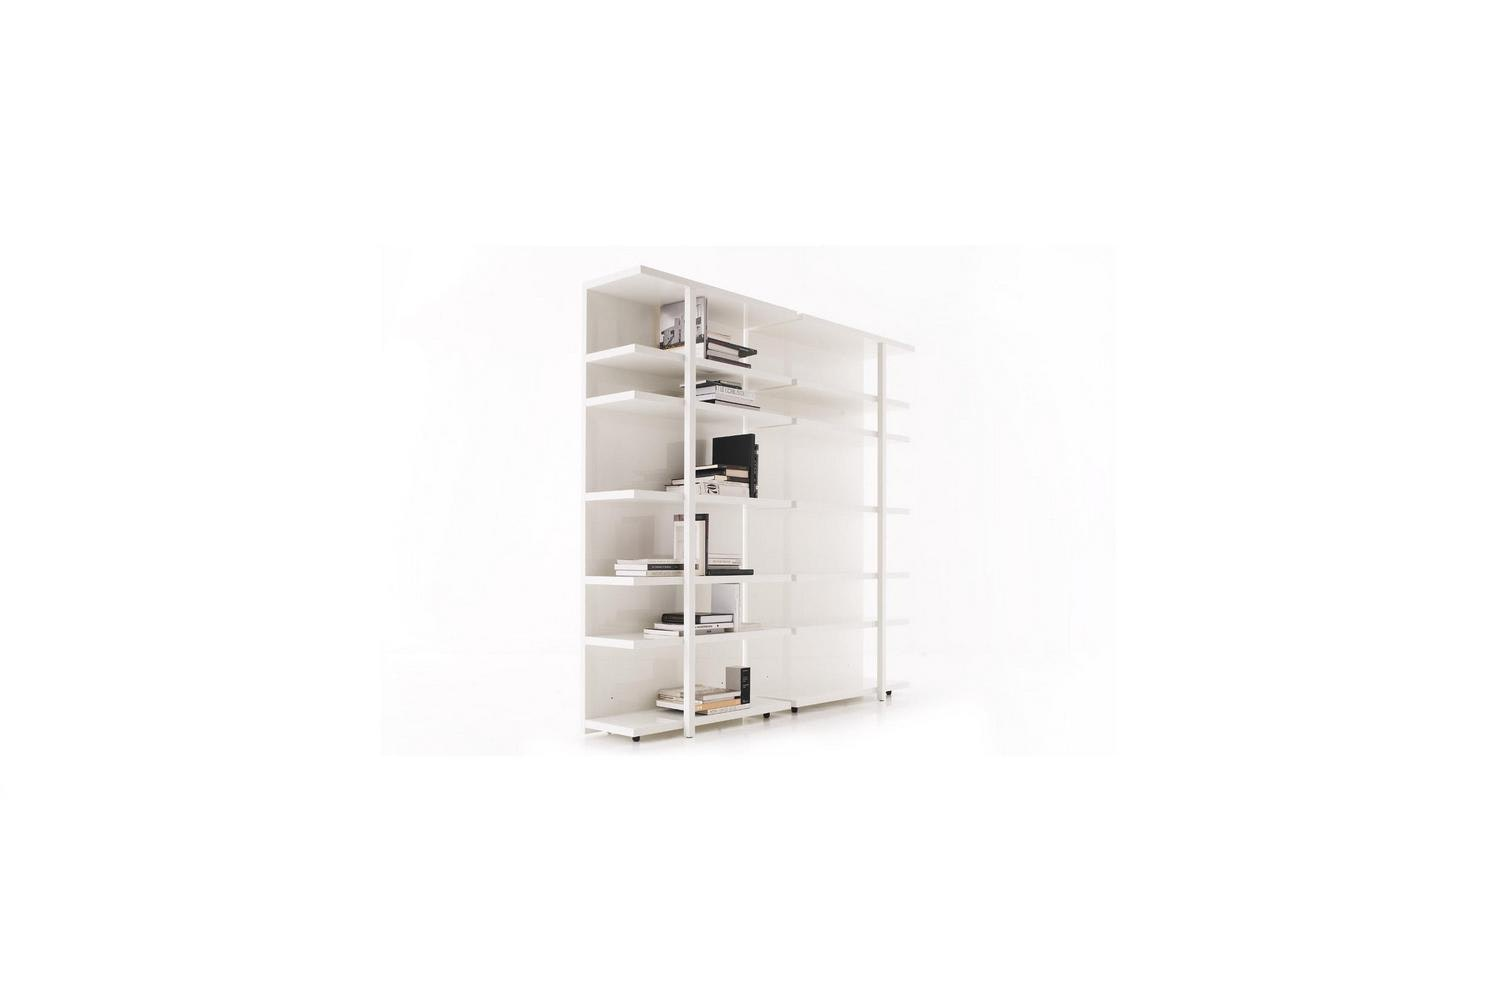 264 Mex Bookcase by Piero Lissoni for Cassina